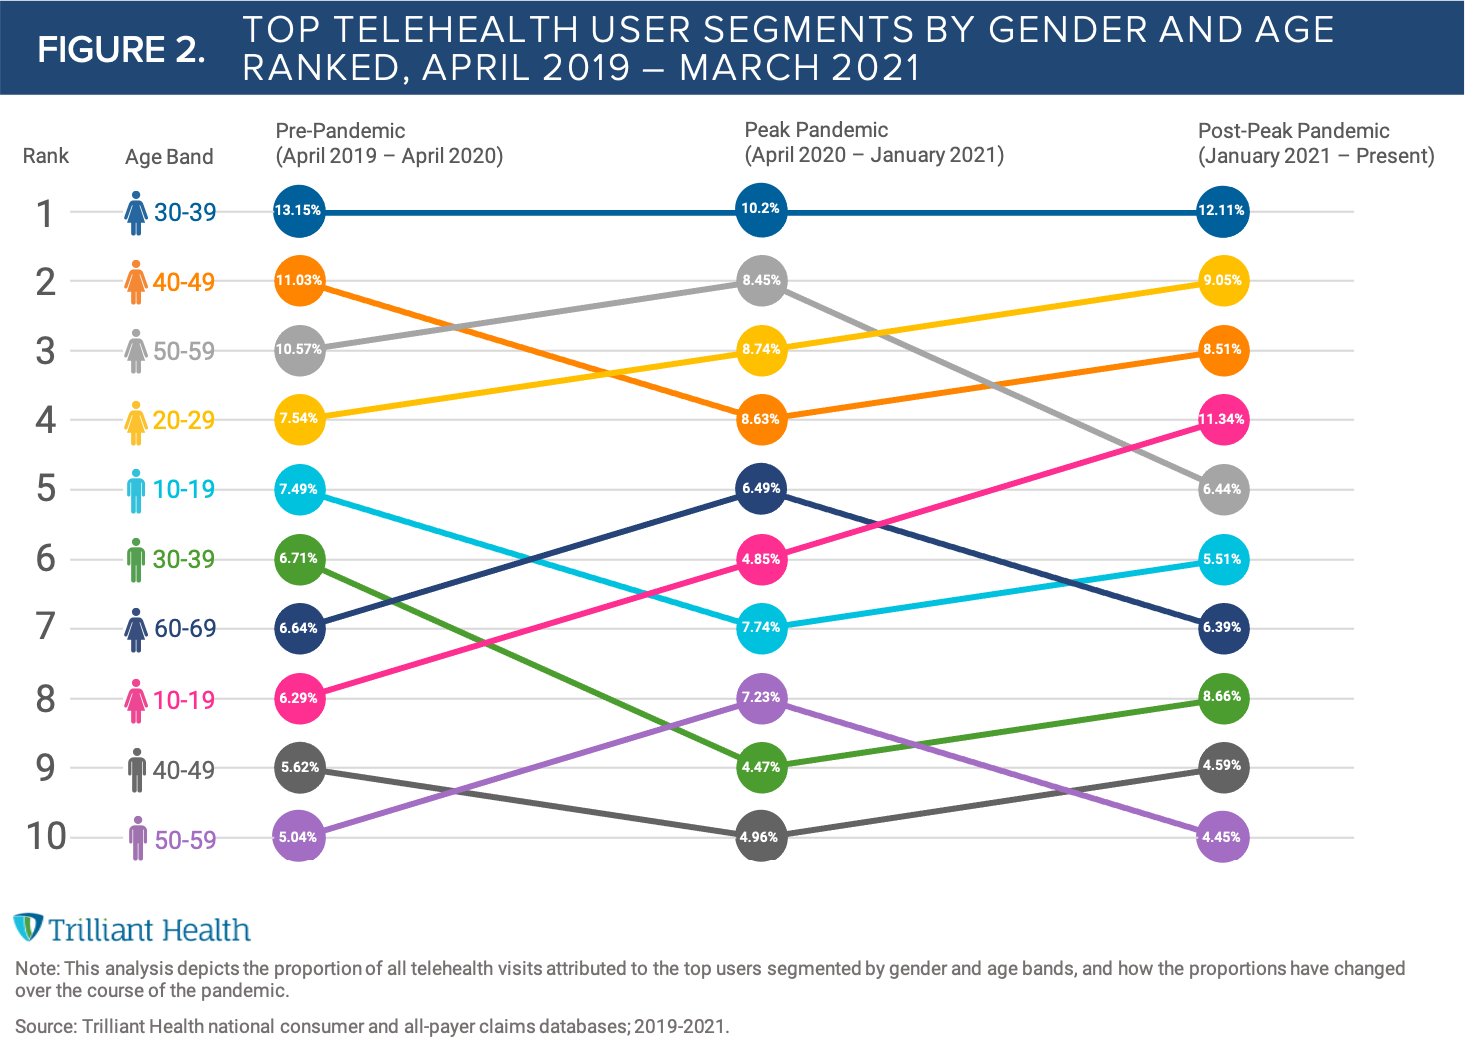 FIGURE 2_Telehealth Users by Gender and Age_FINAL